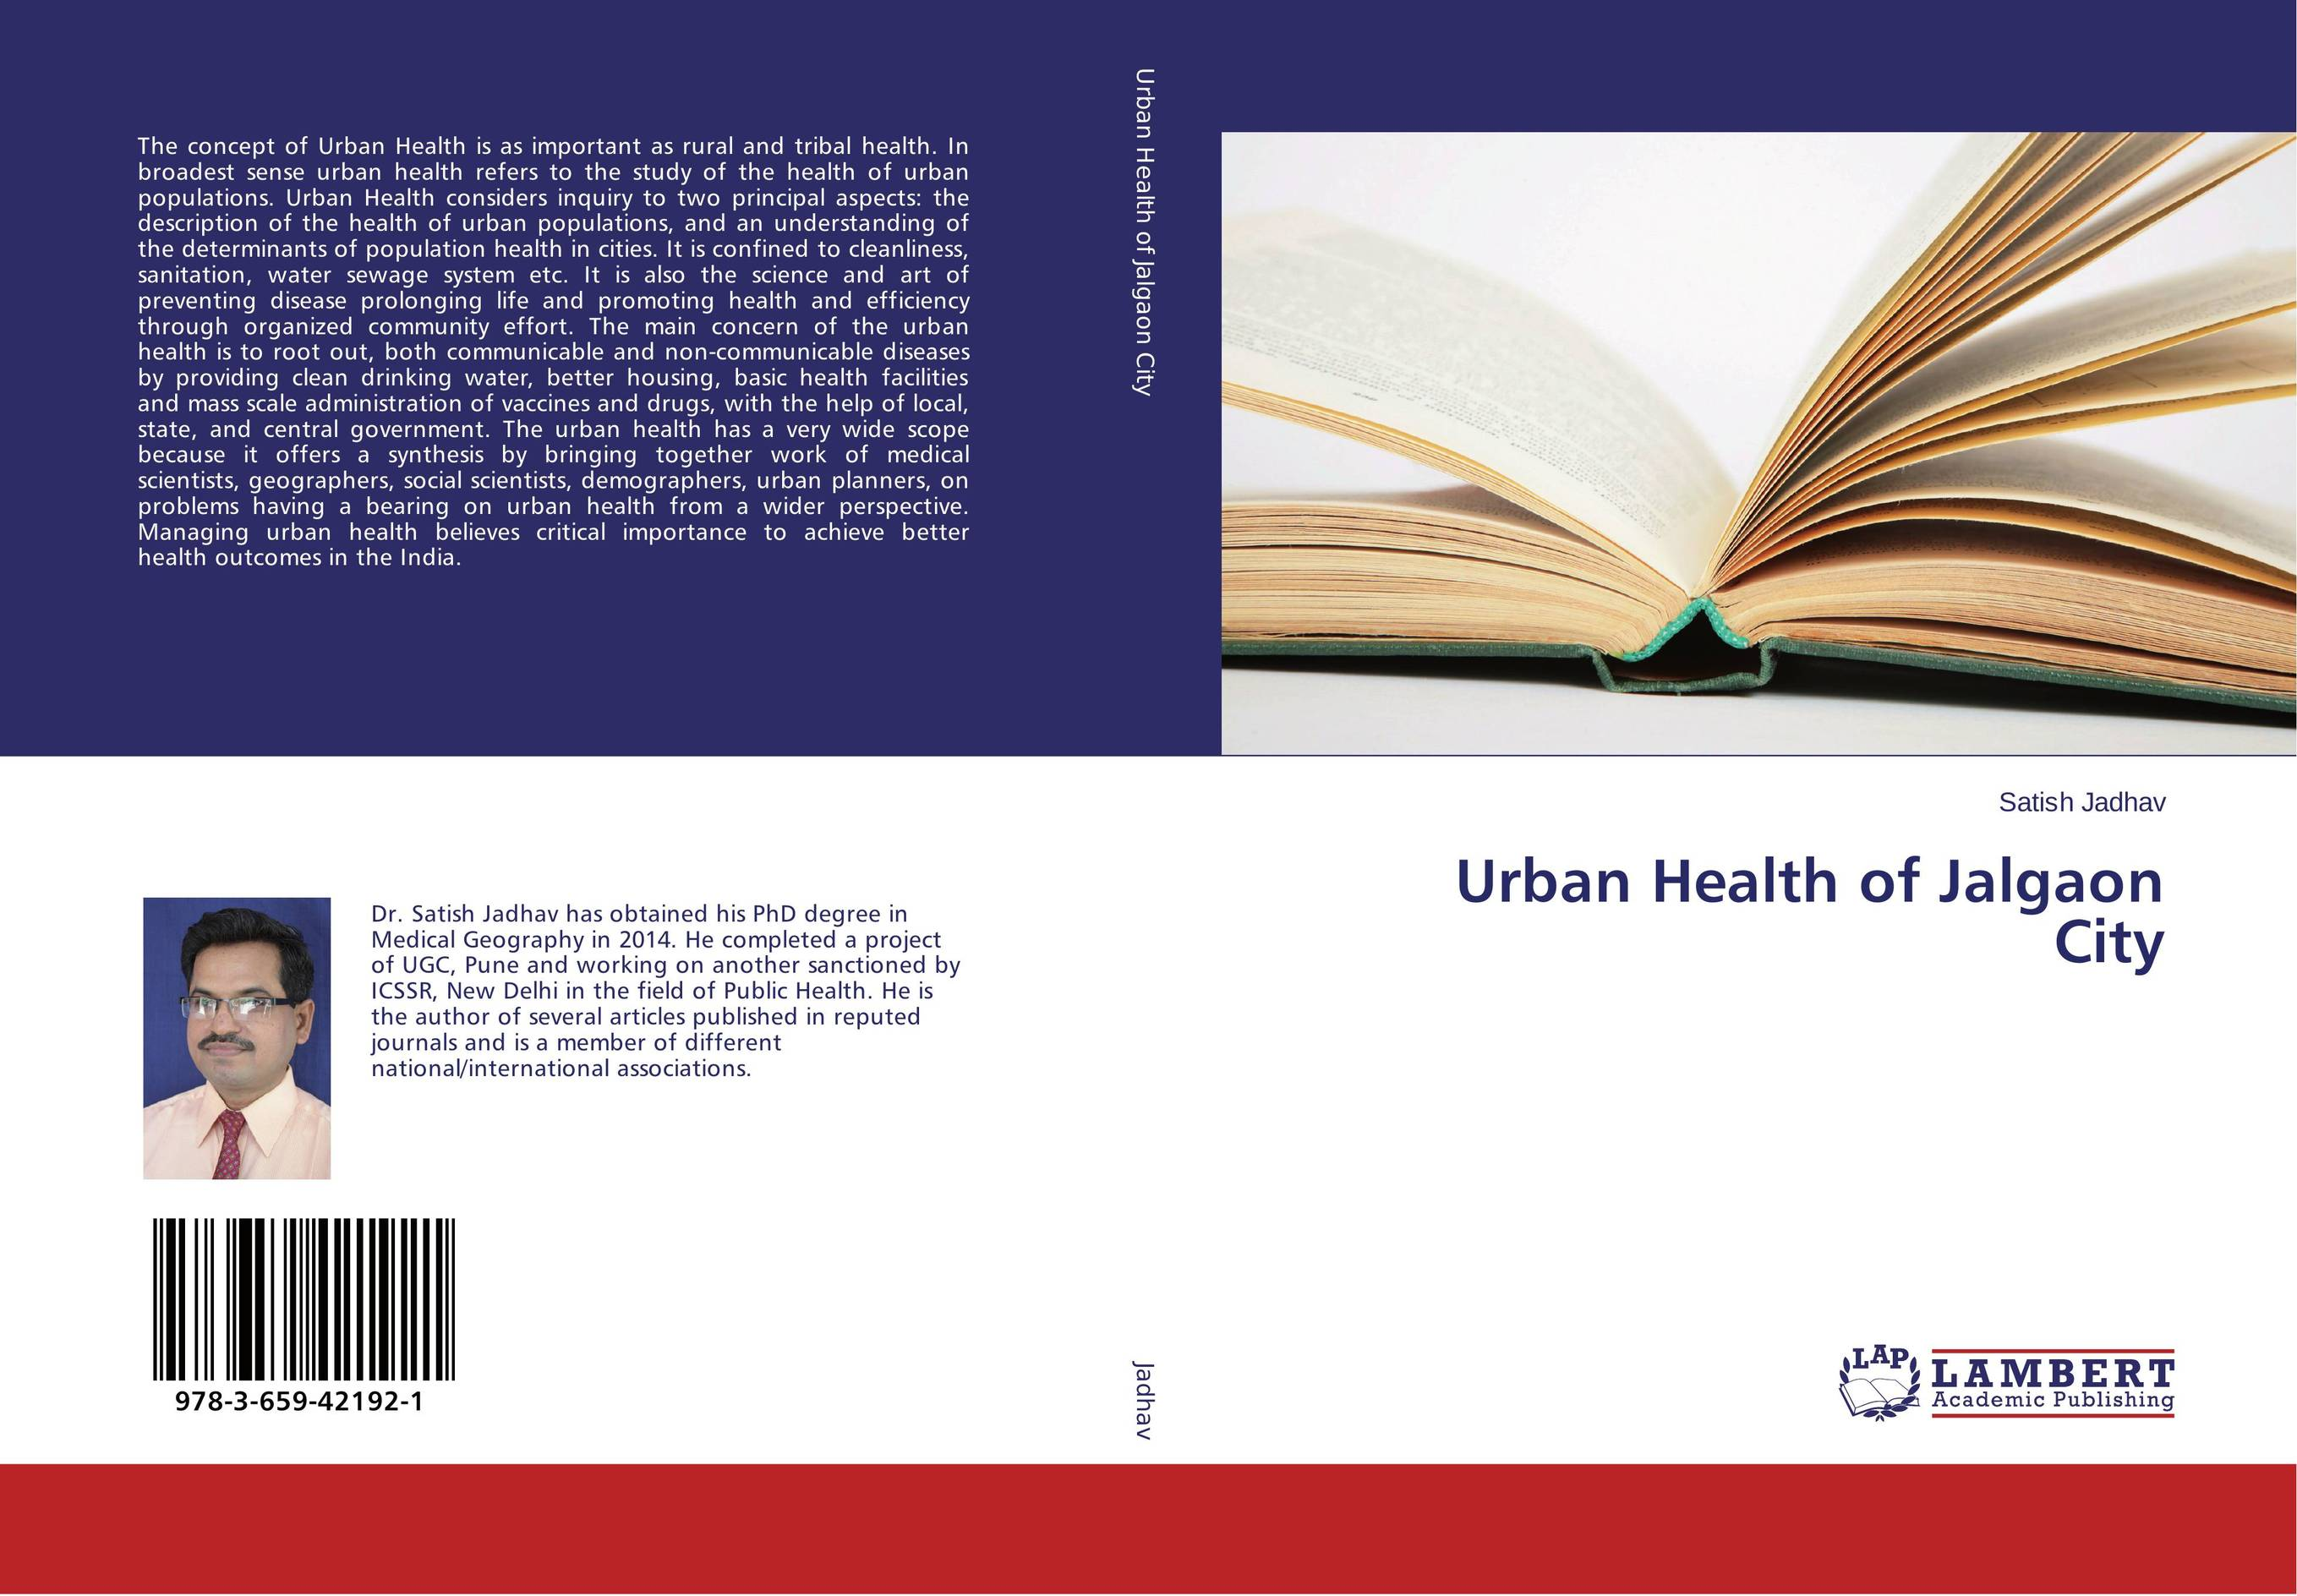 Urban Health of Jalgaon City джемпер greg horman цвет серый синий